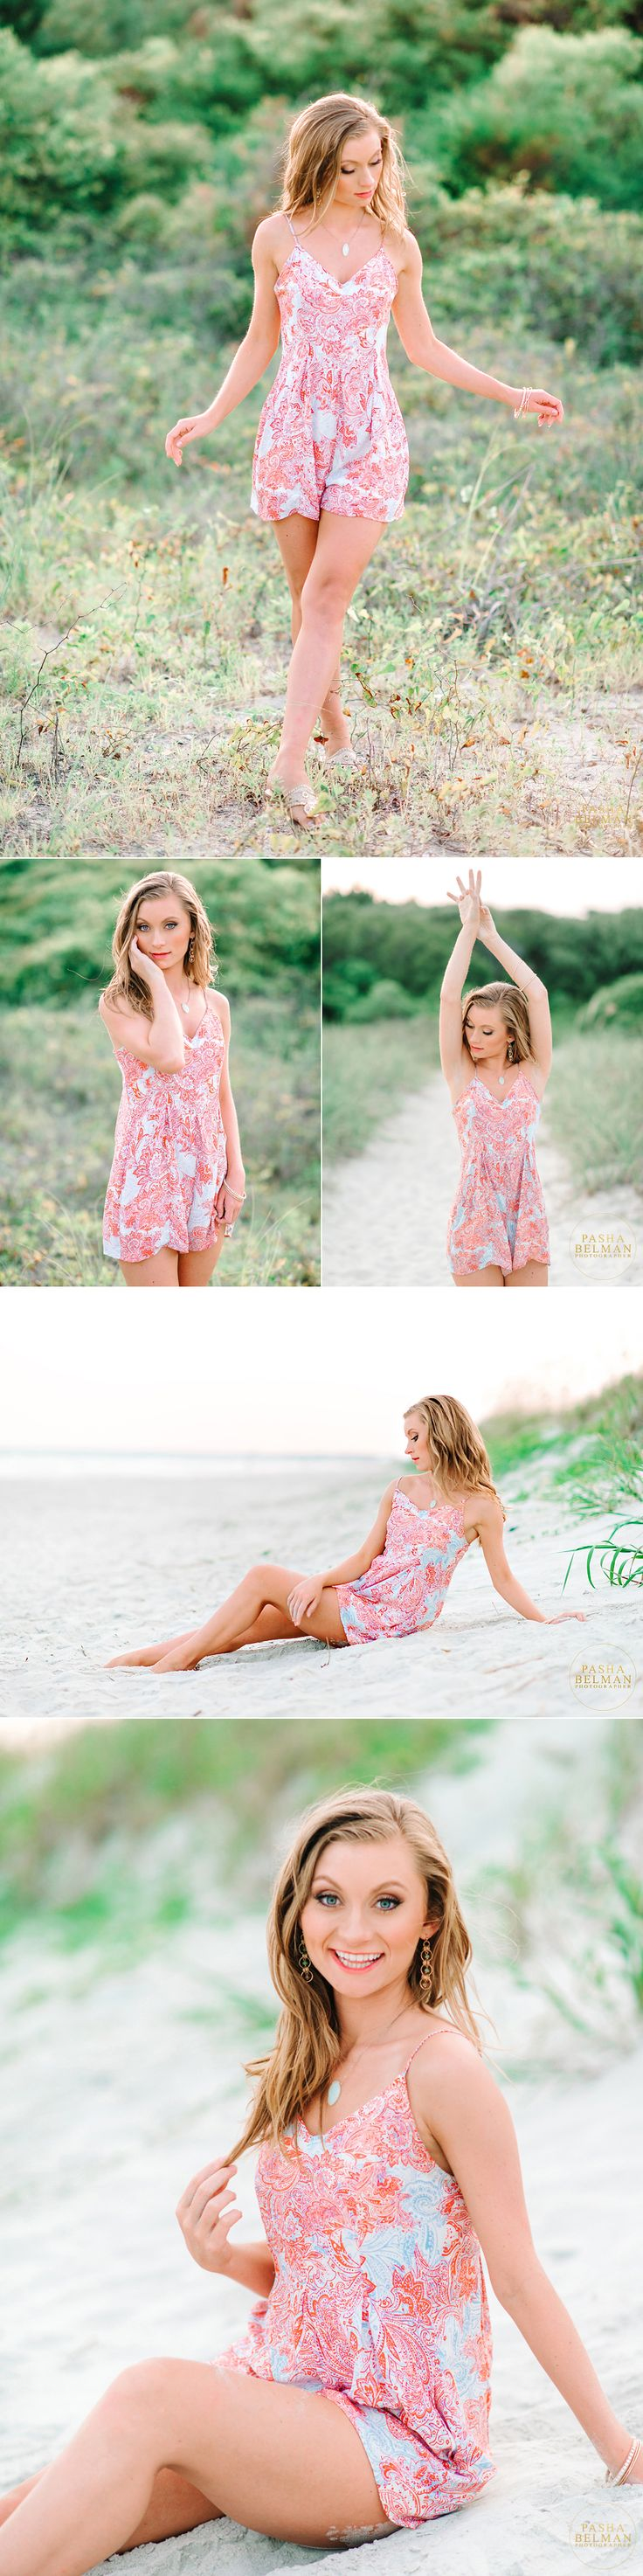 Senior Pictures | Senior Photography | High School Senior Photographers in…